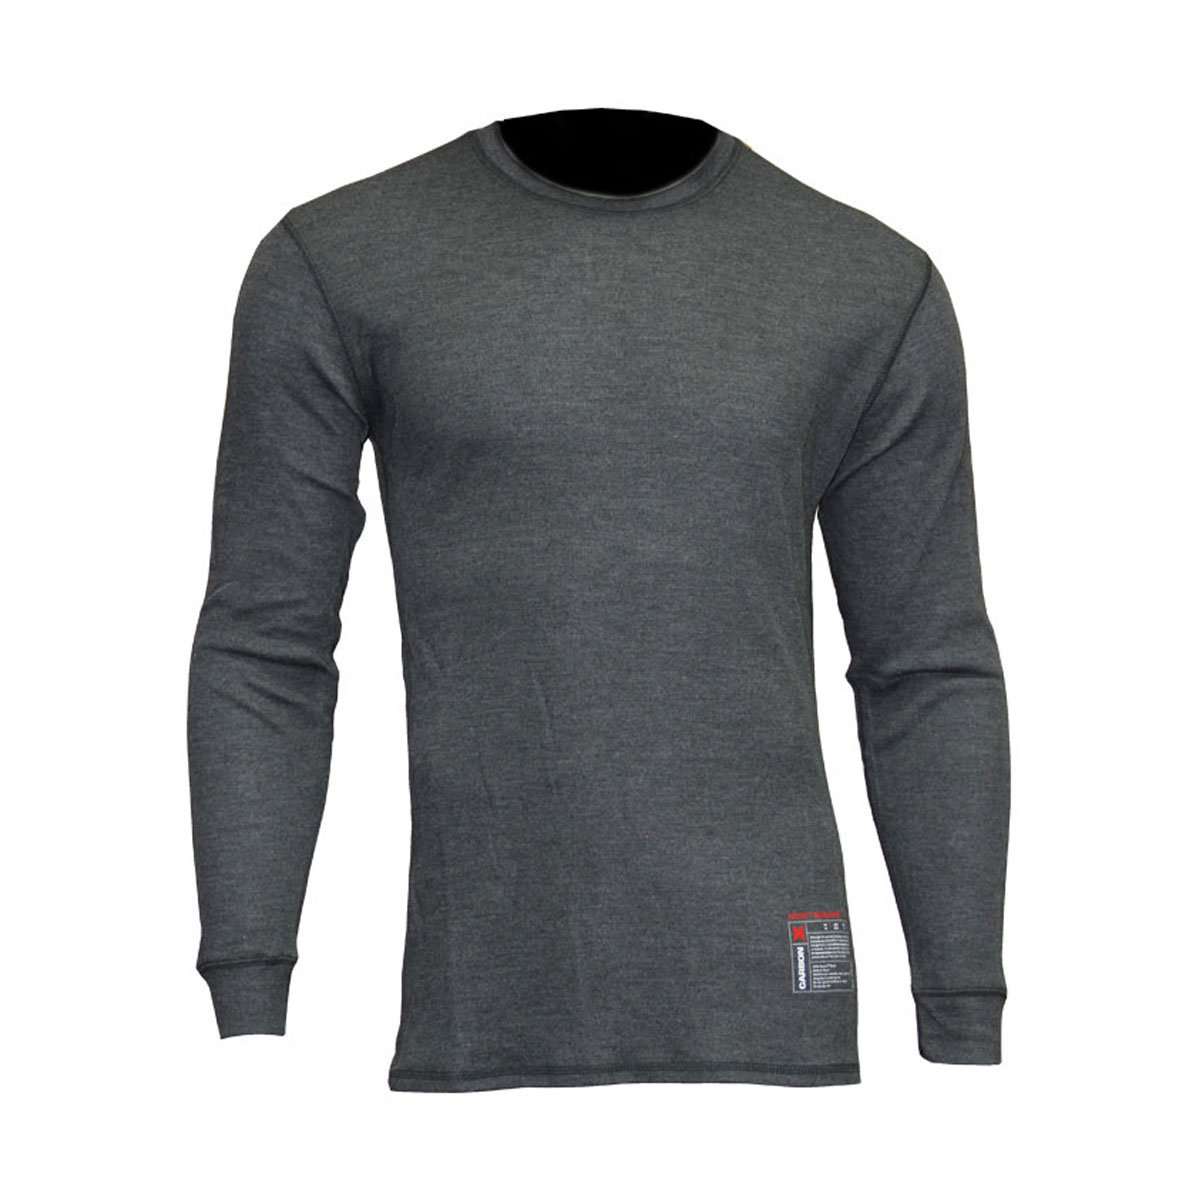 Chicago Protective Apparel CXA-54-L FR Baselayer Shirt, CarbonX Active, Large